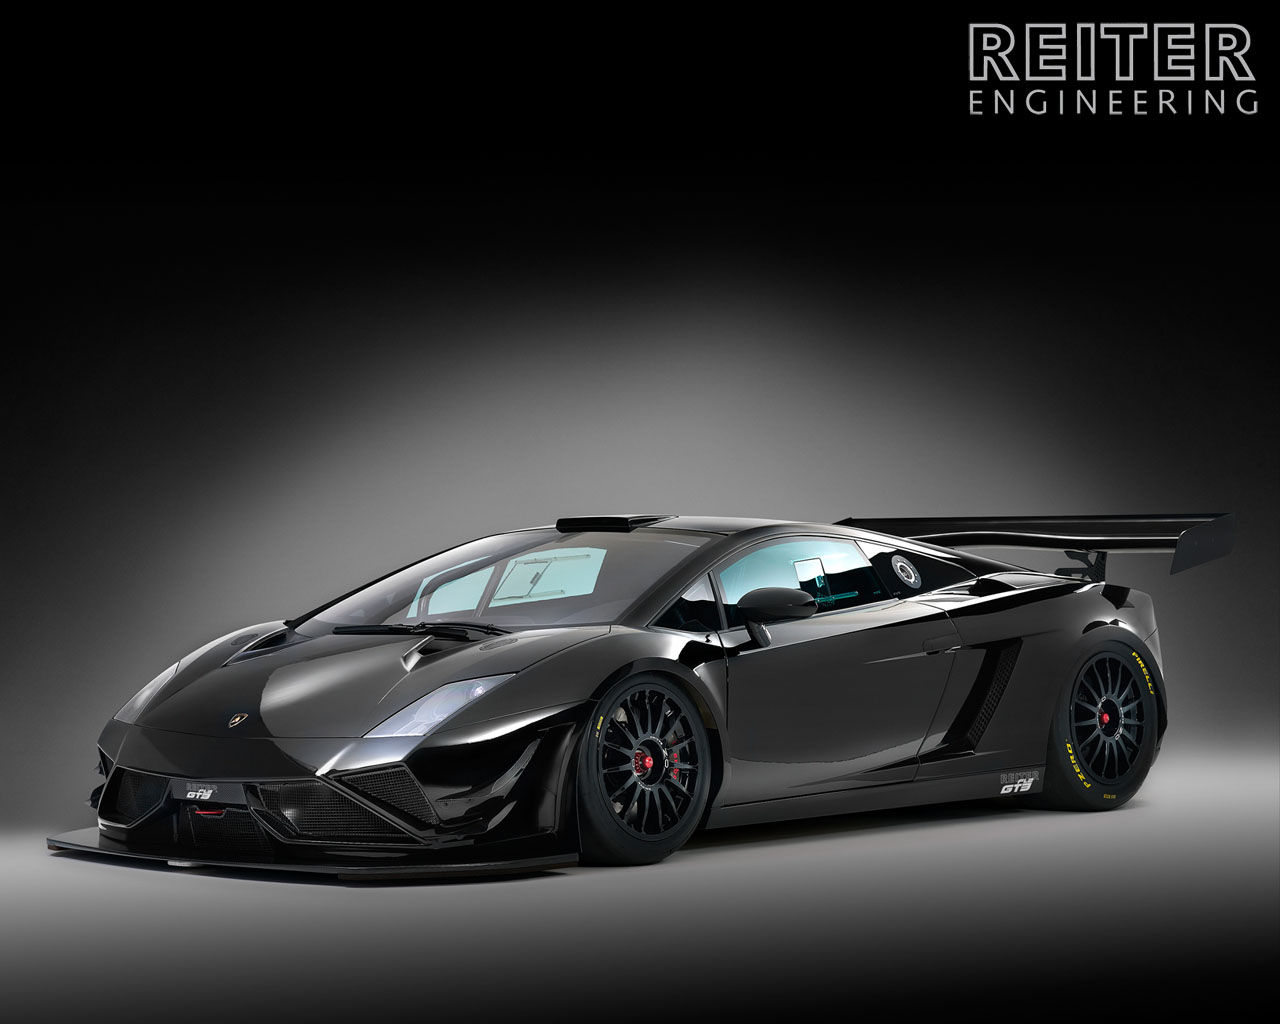 gallardo_wallpaper_1280_1